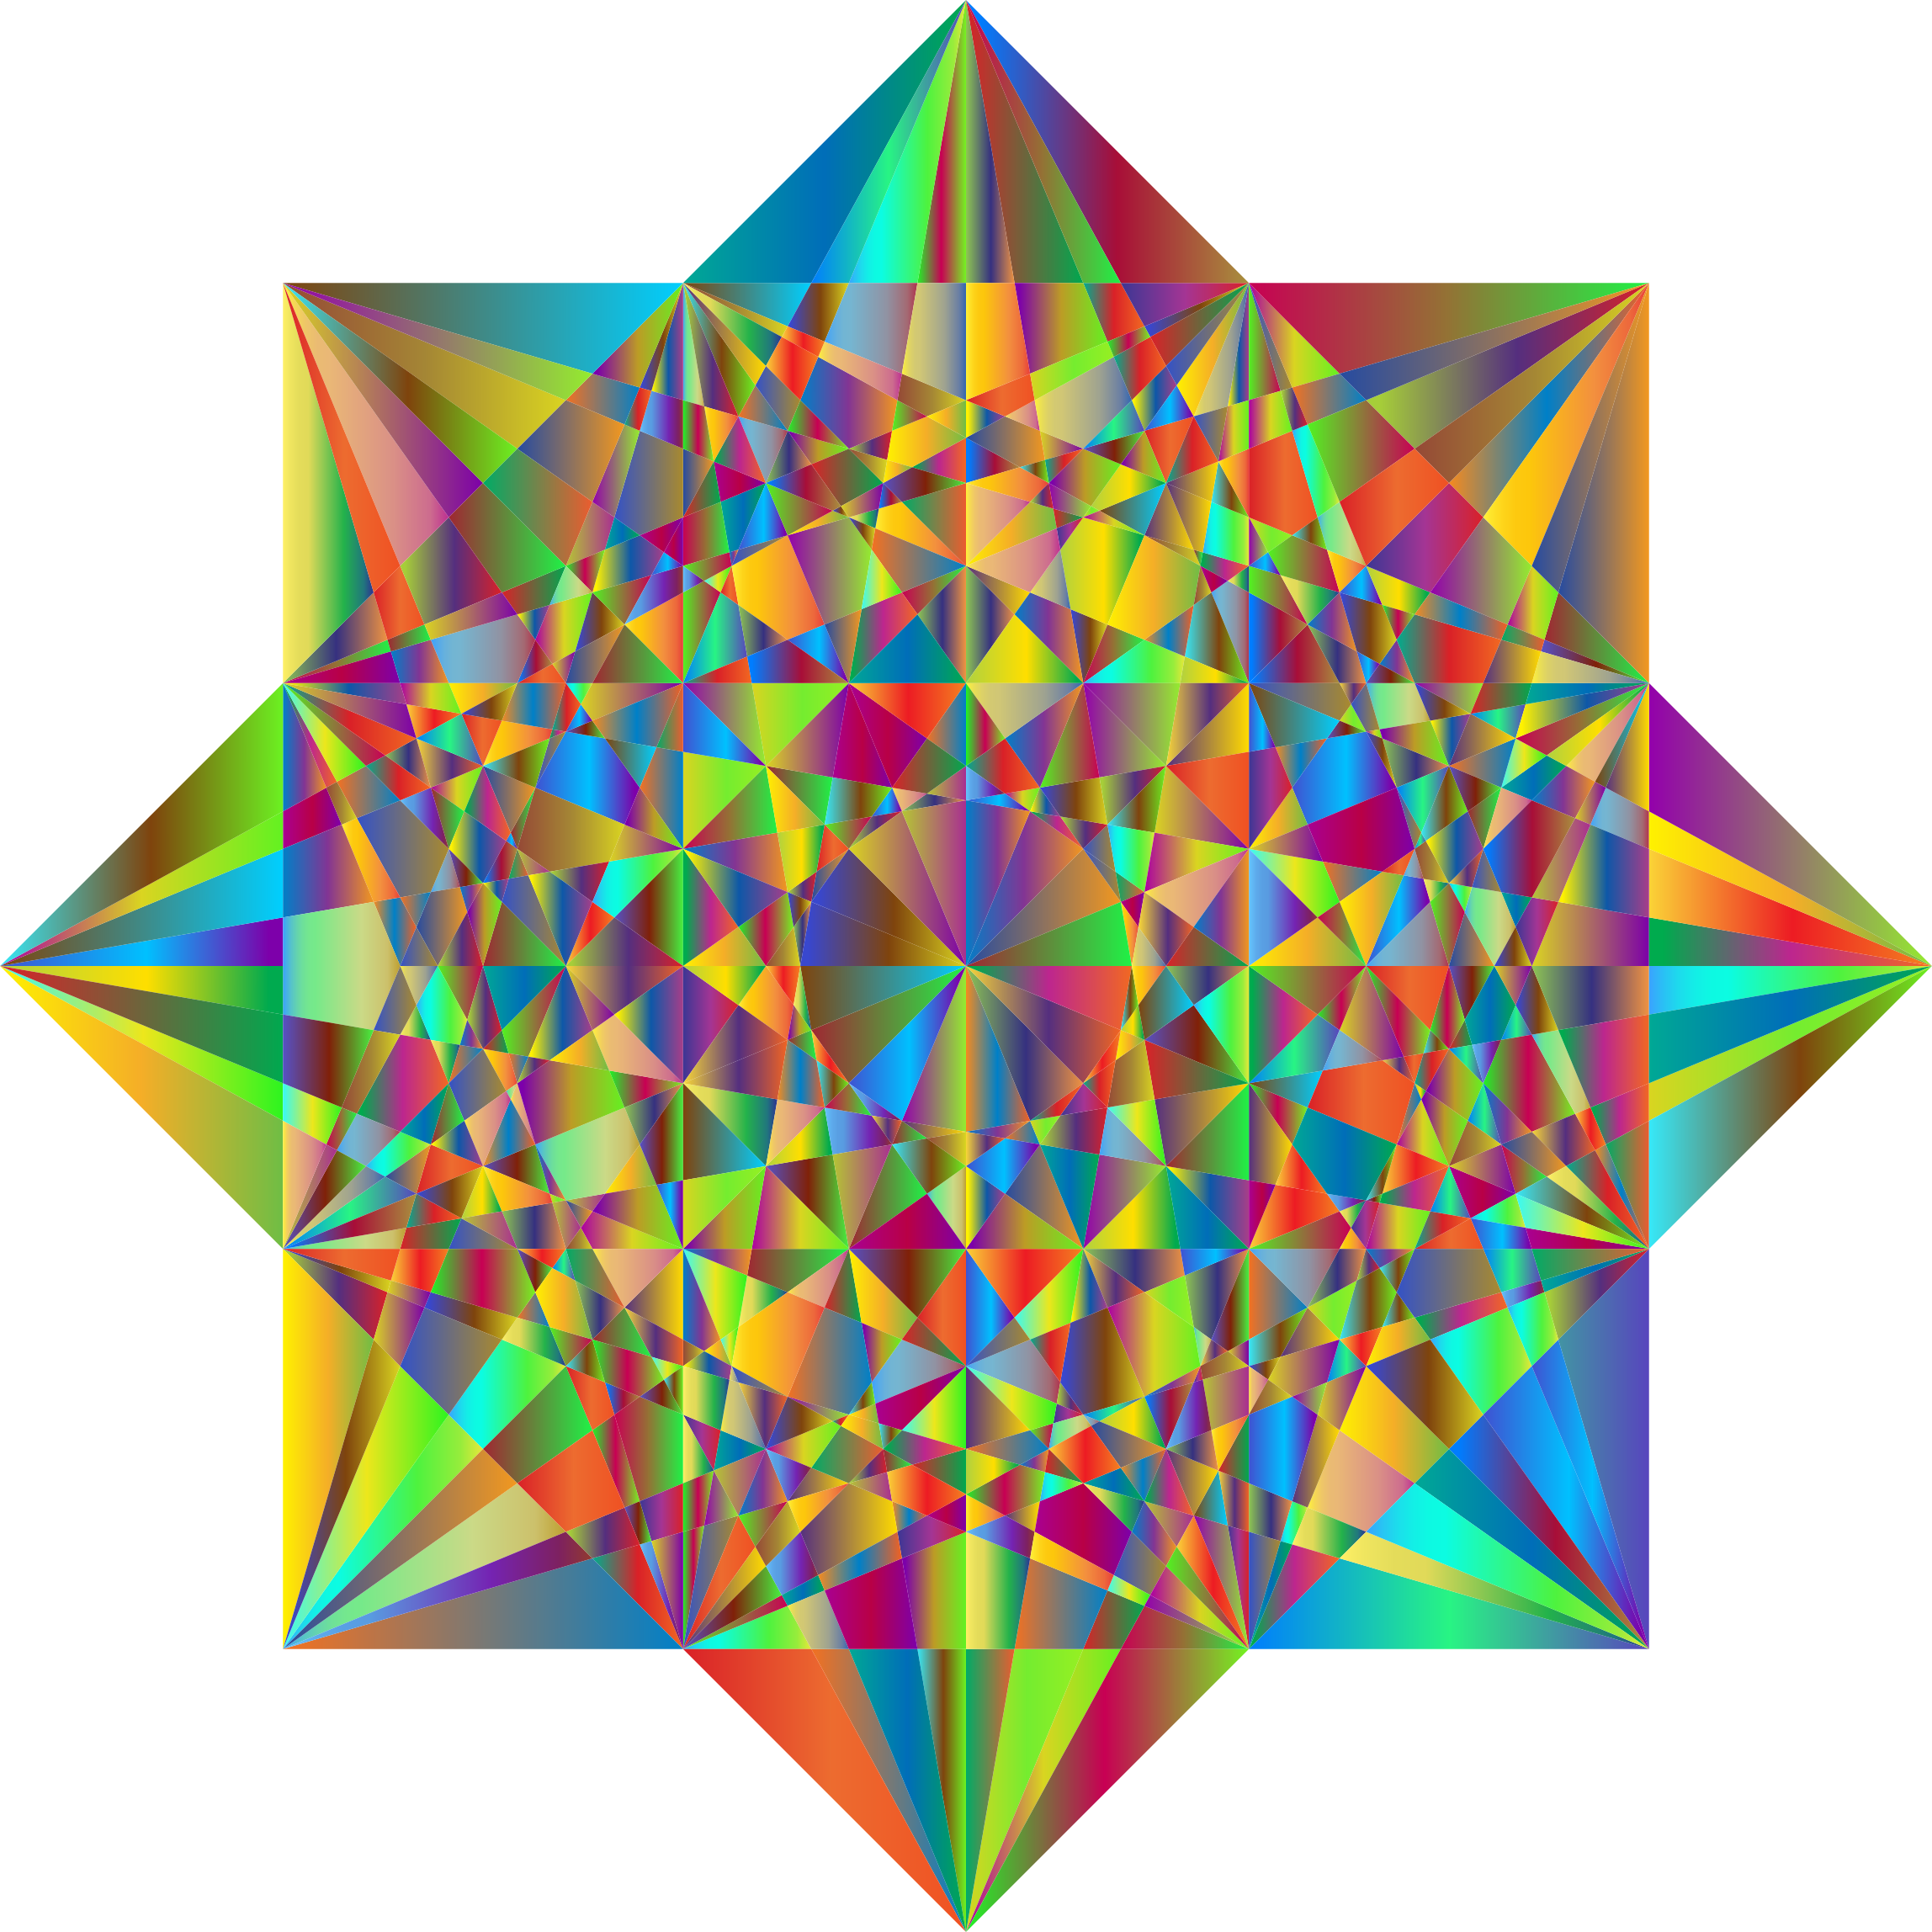 Prismatic Geometric Star 2 by GDJ